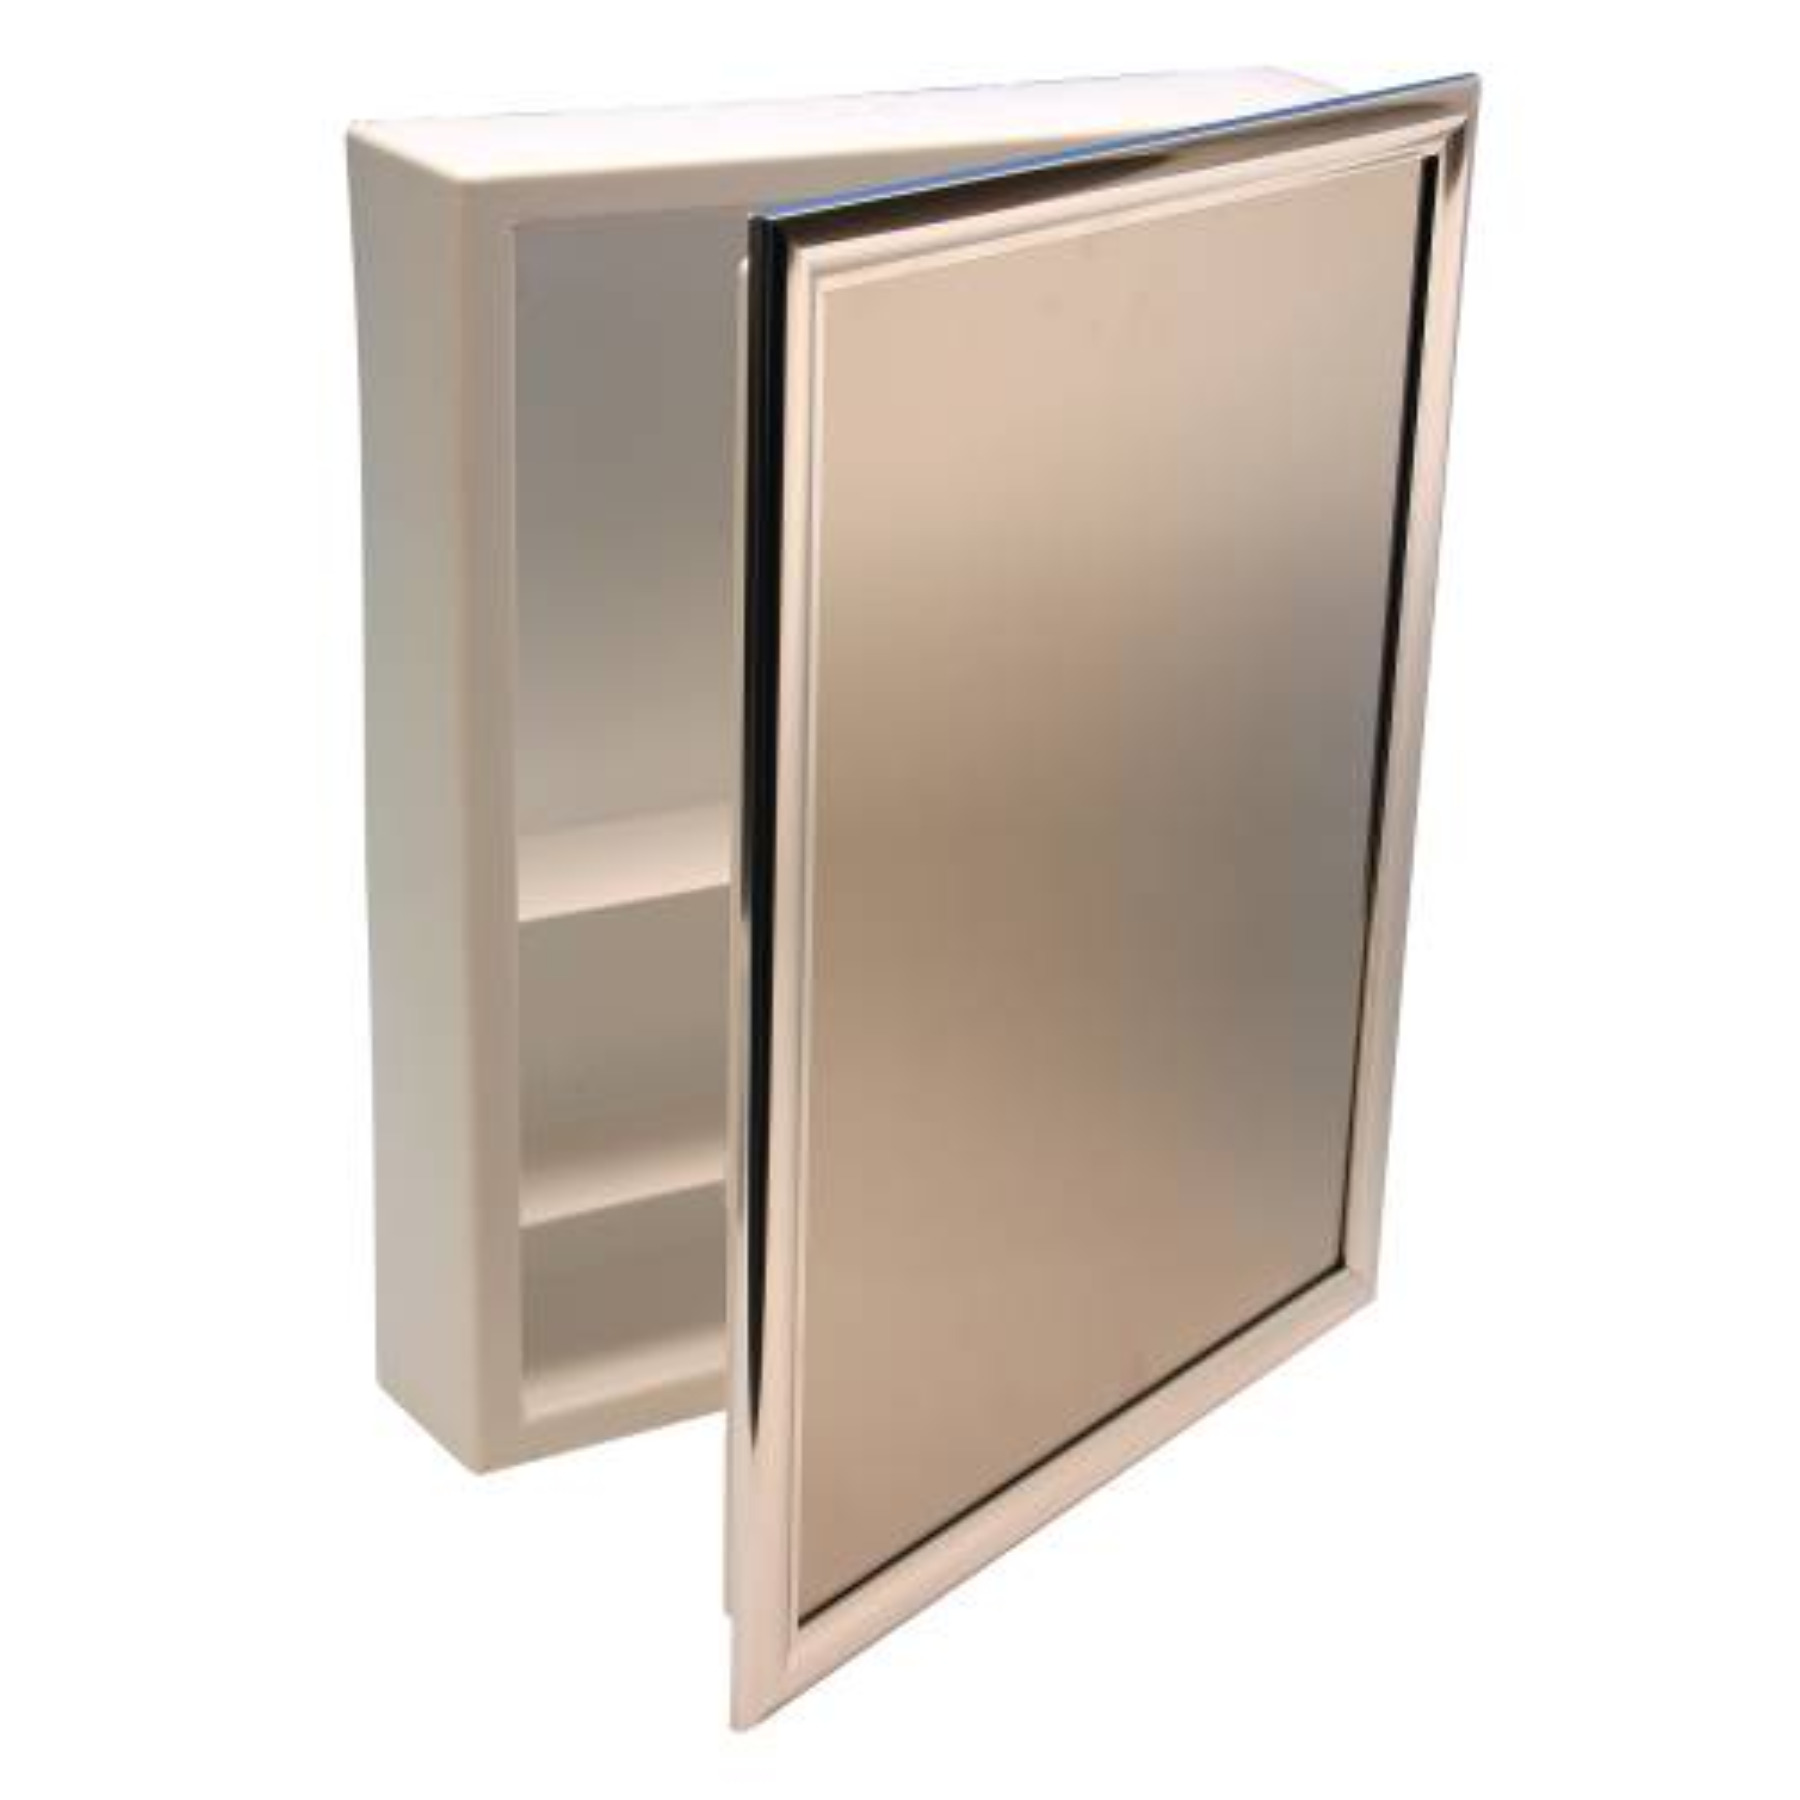 MEDICINE CABINET ECONOMY 14-1/4 IN. X 18 IN. SURFACE